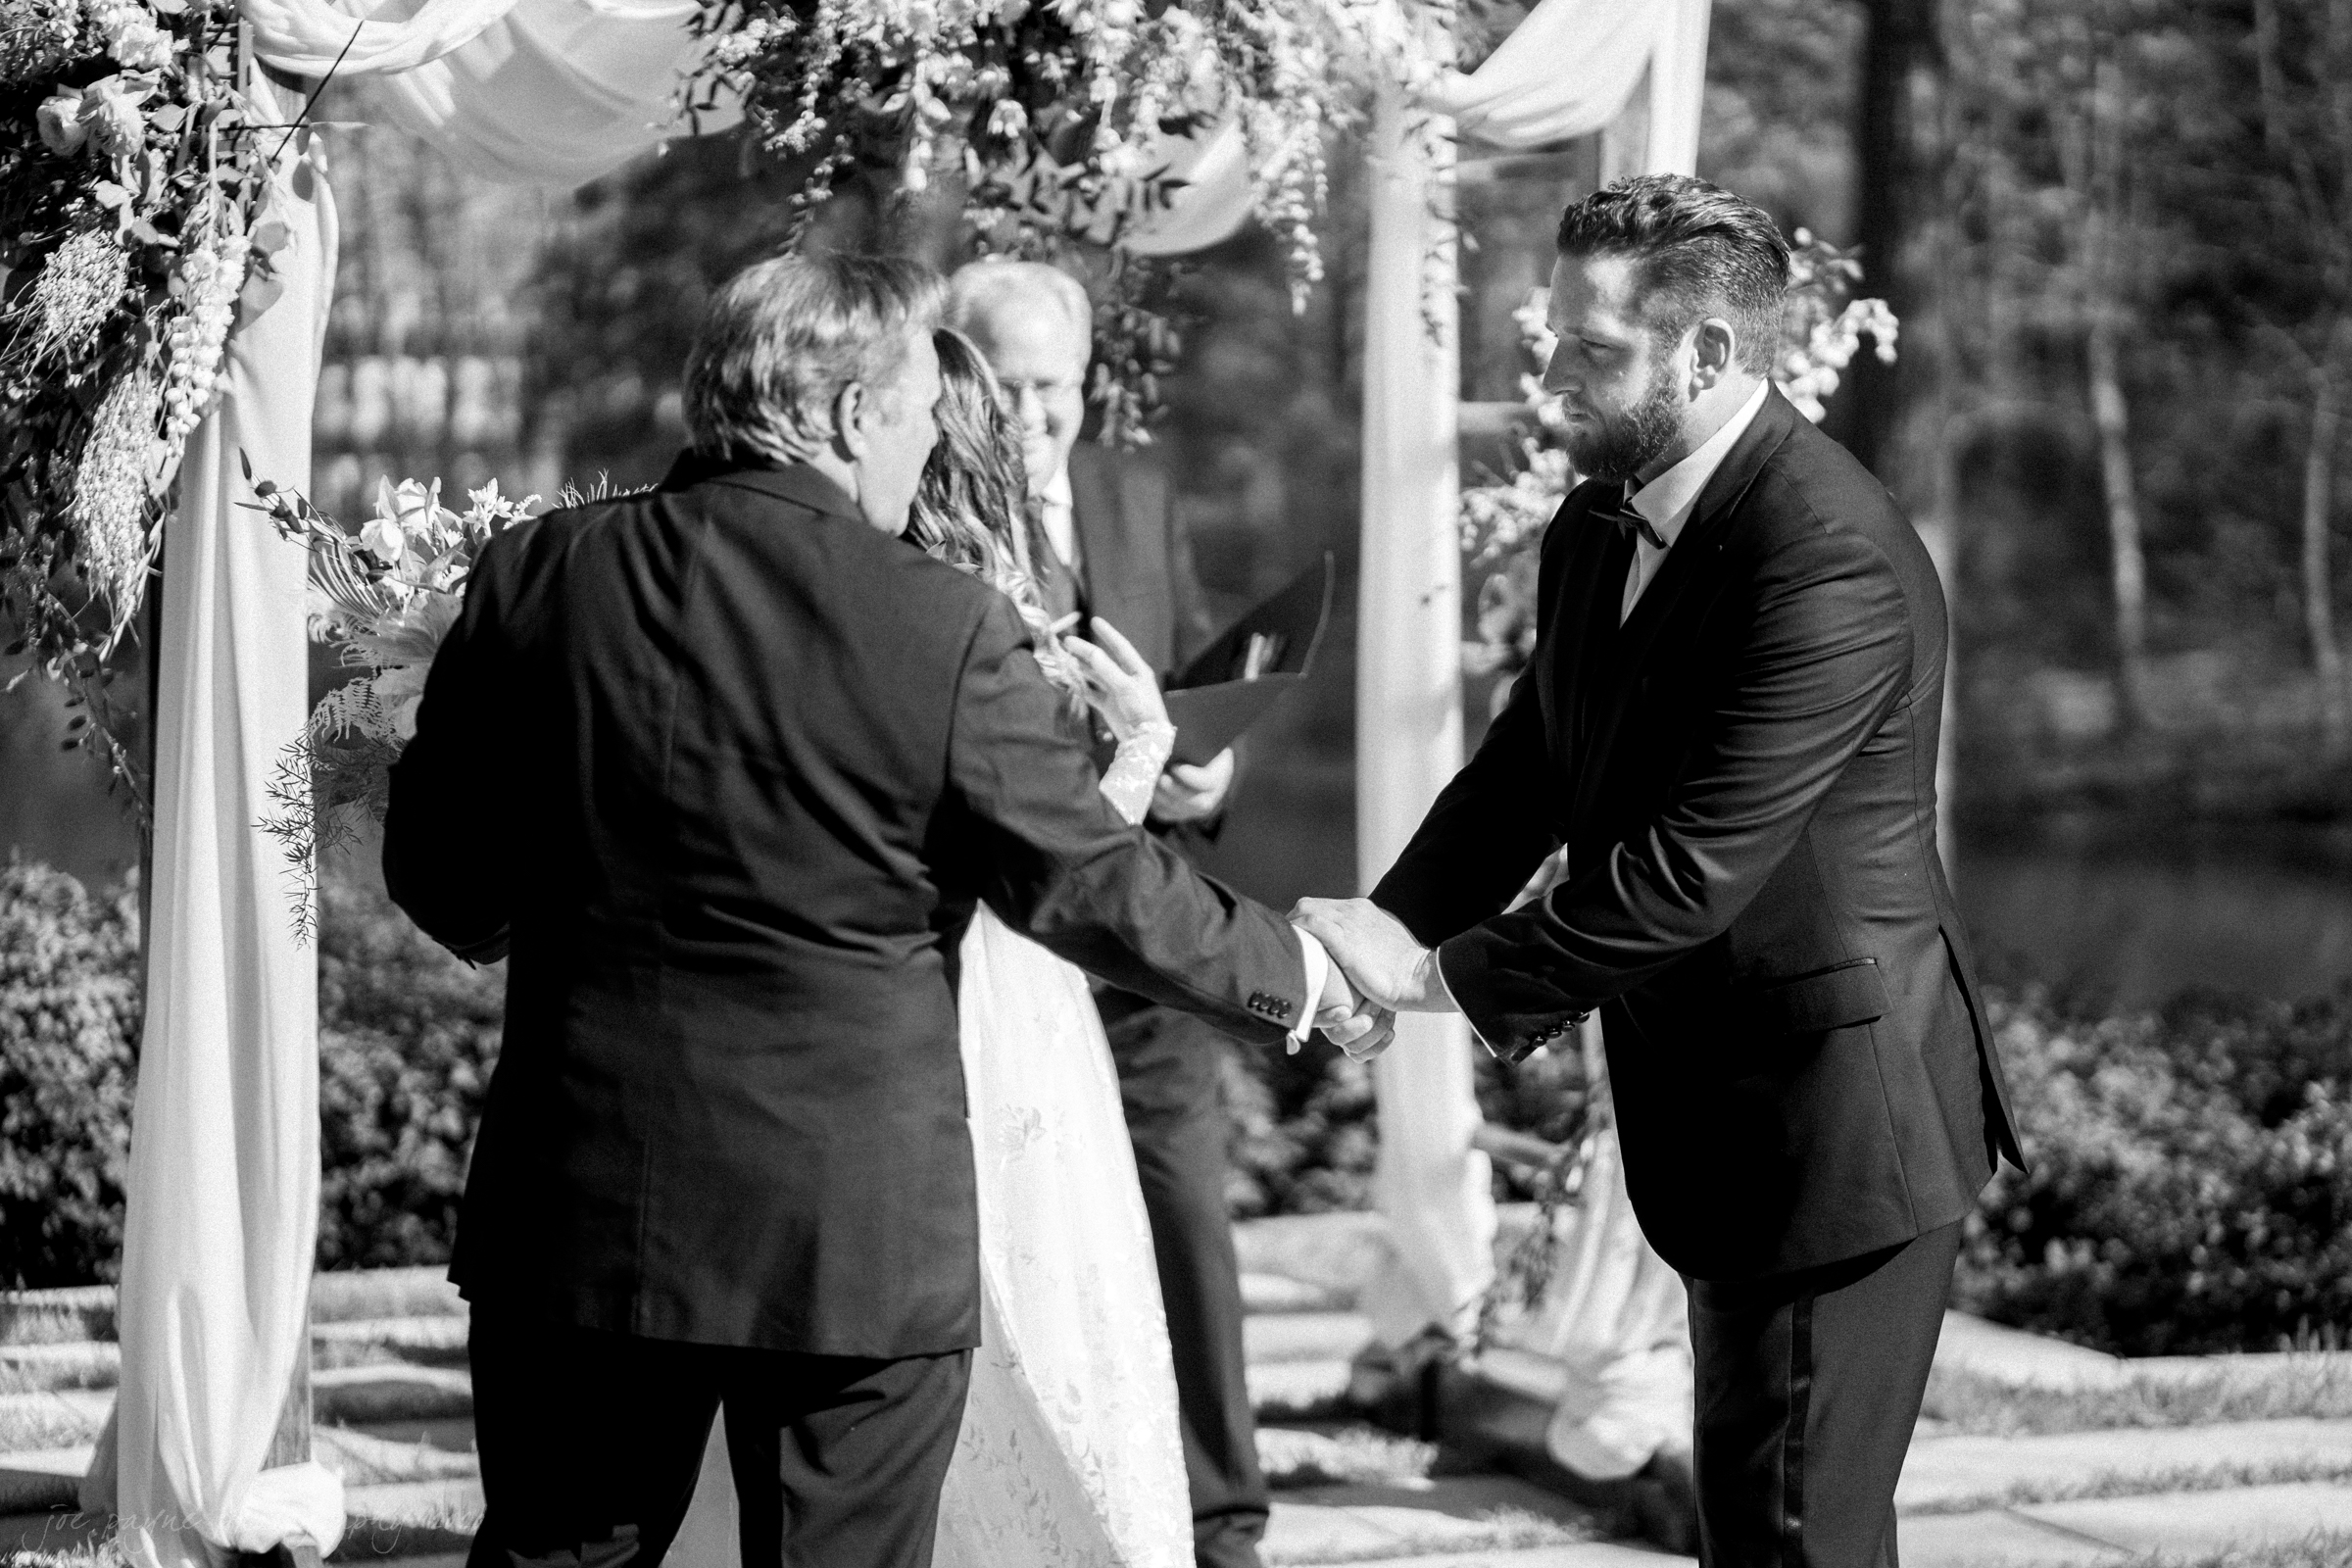 umstead hotel park wedding photography brittany harrison 16